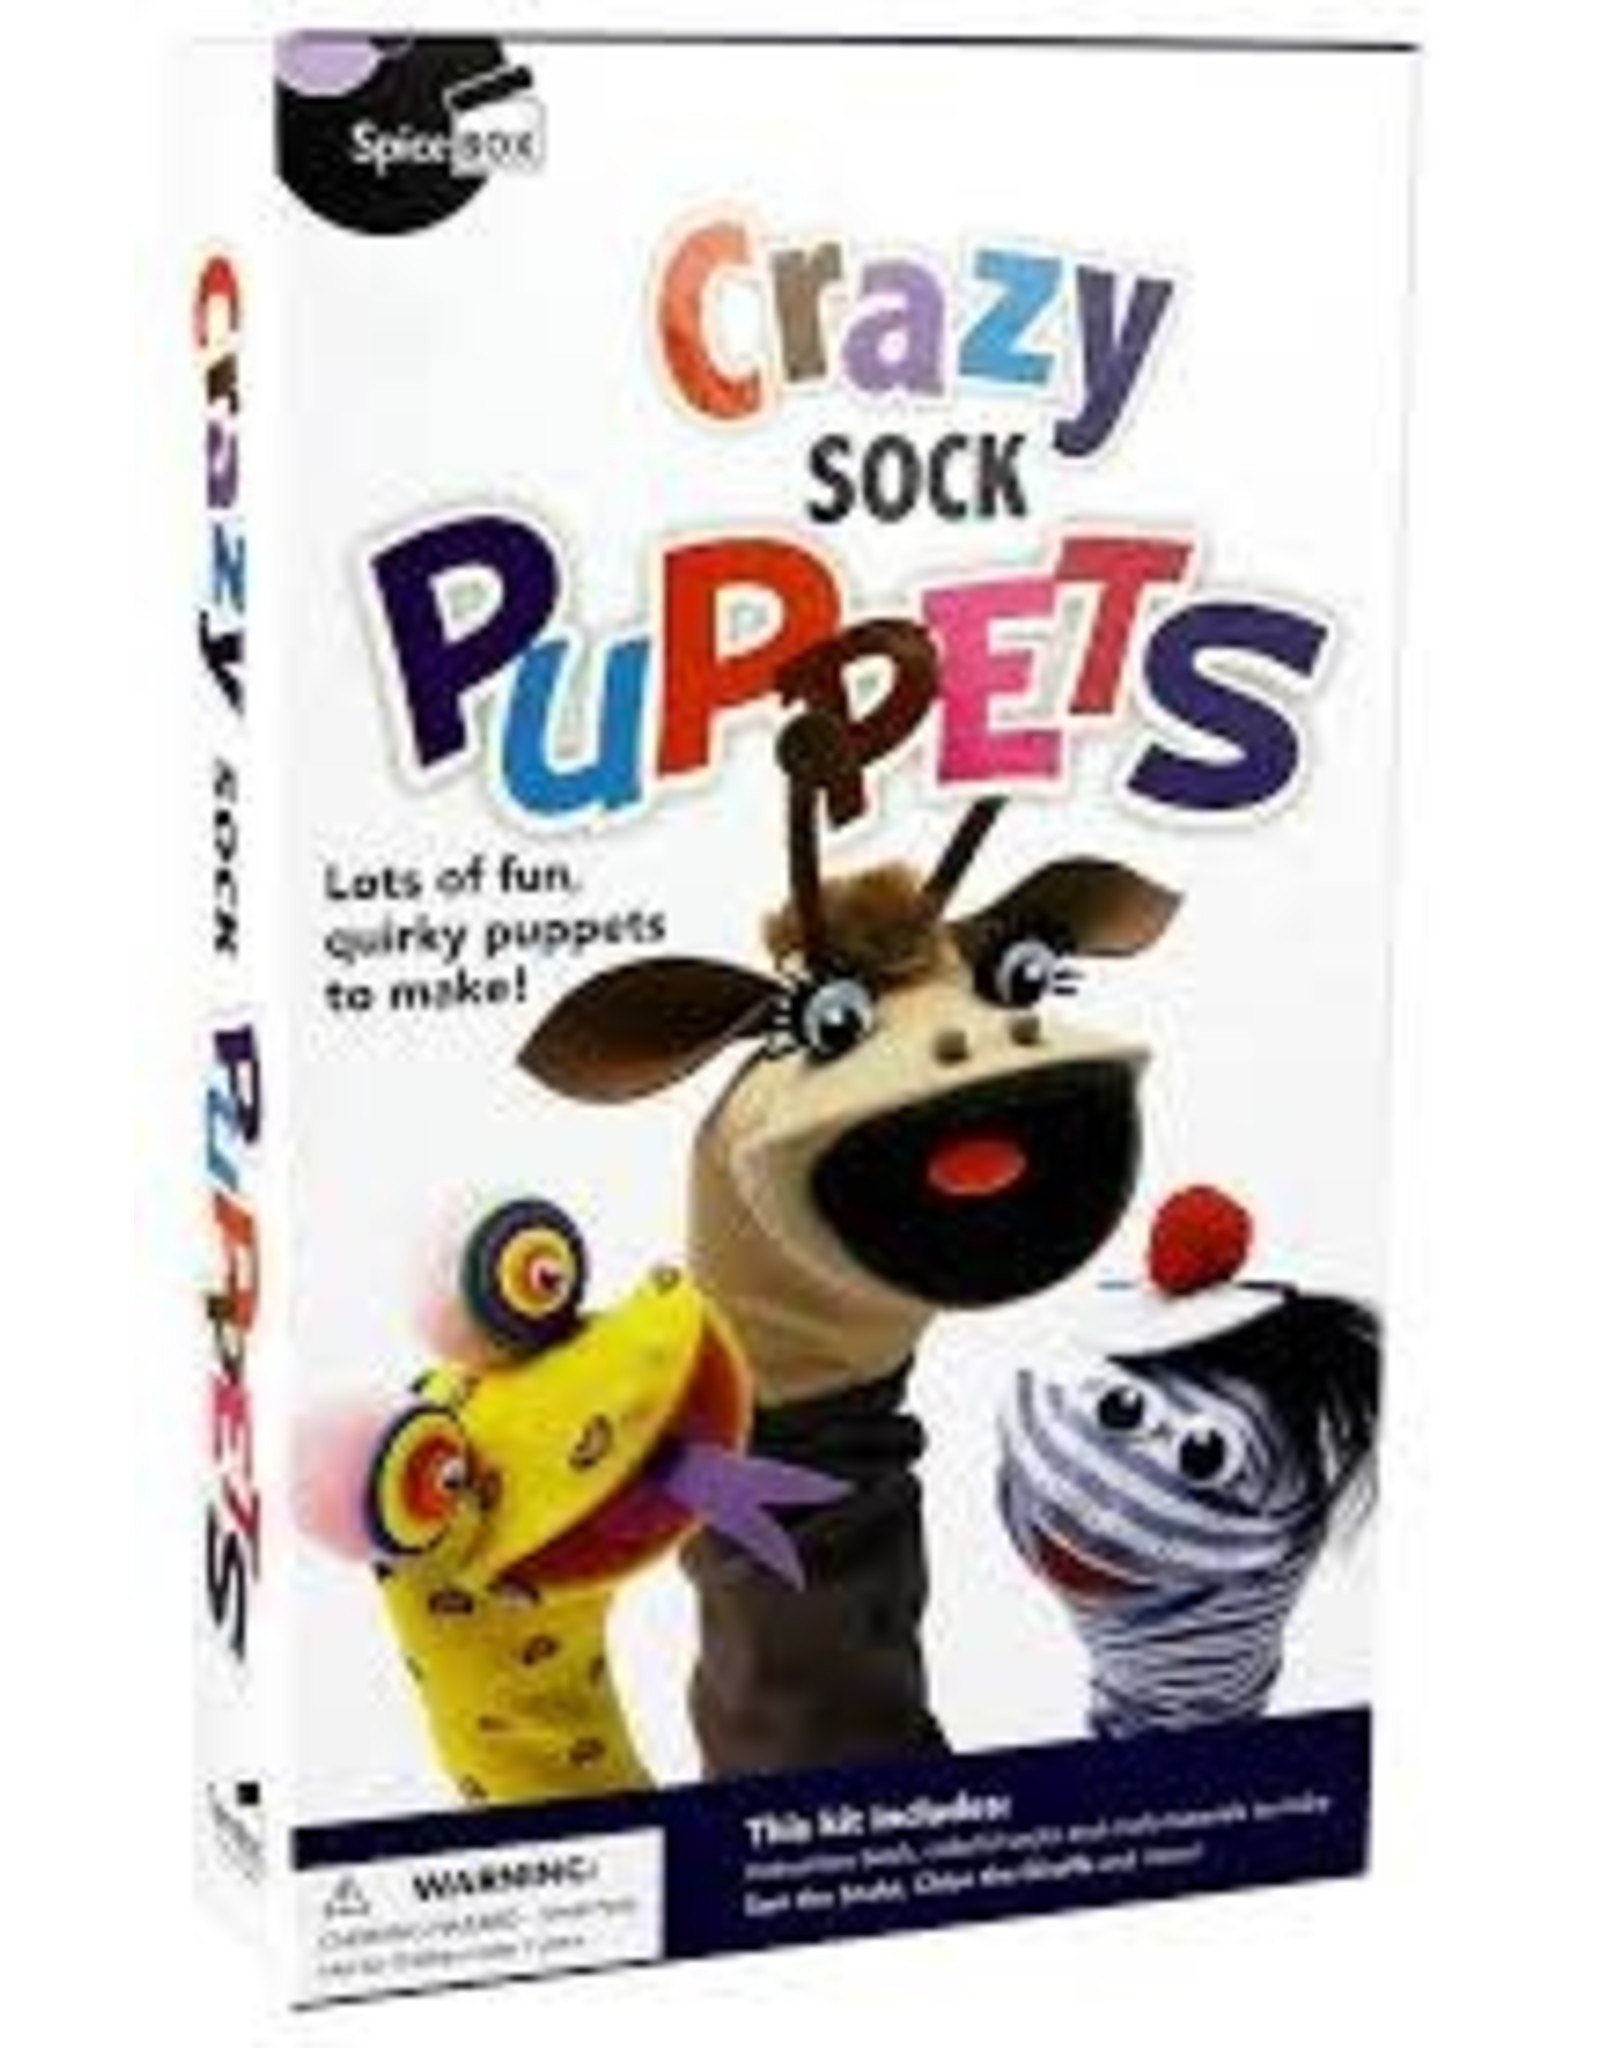 SPICEBOX CRAZY SOCK PUPPETS